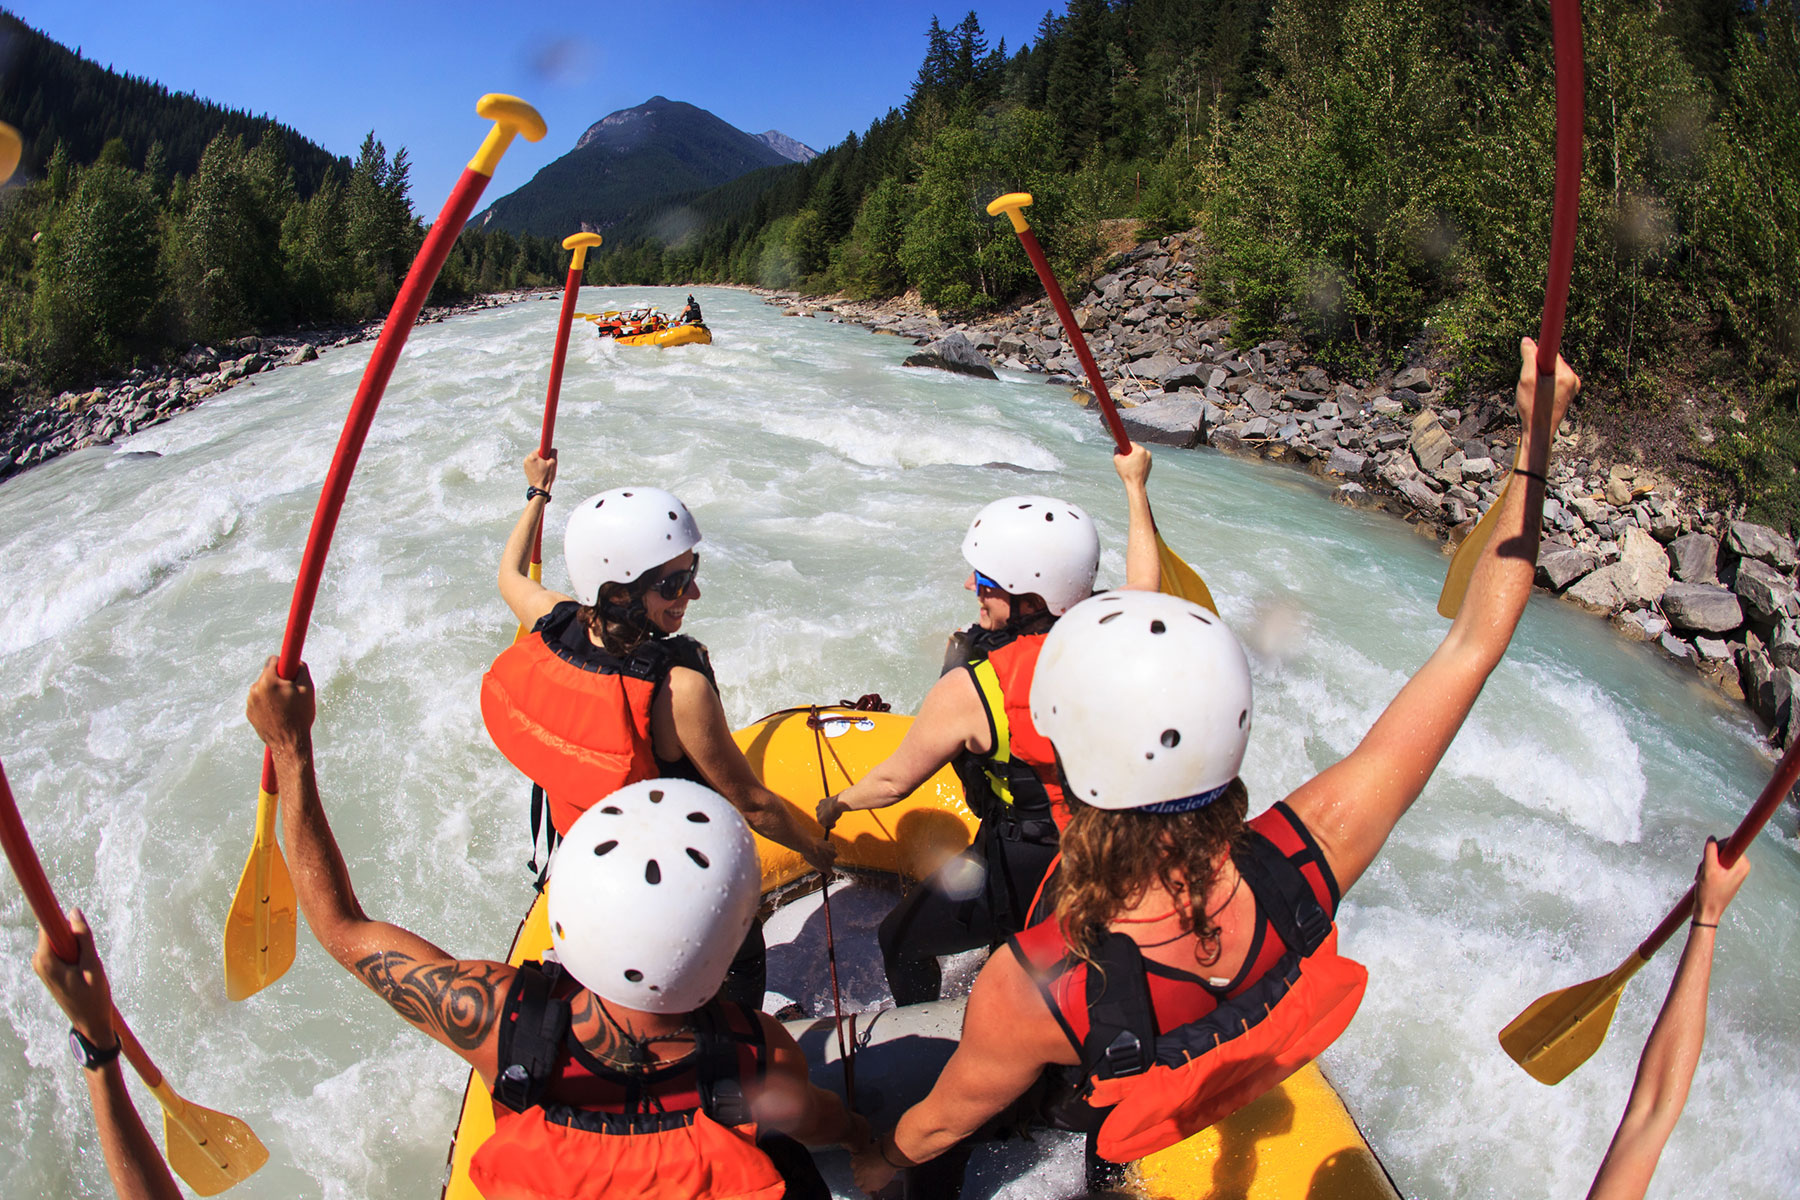 Rafters standing up to go through some rapids